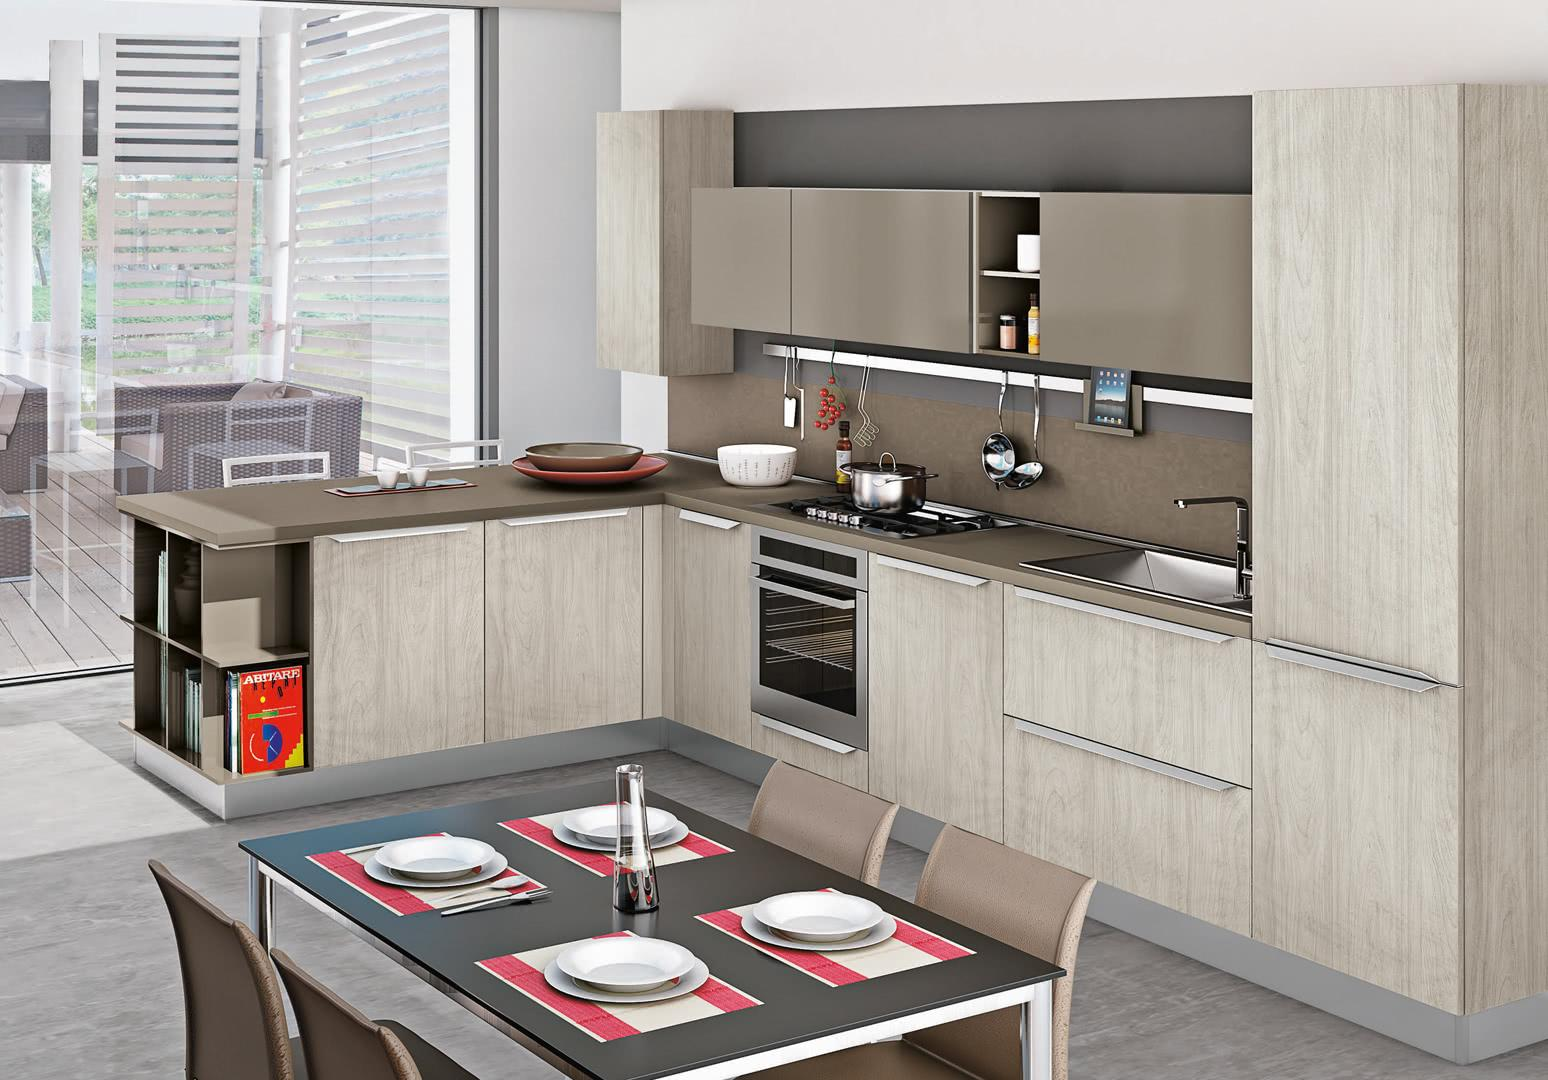 CUCINA COMPONIBILE CREO KITCHENS GAYLA